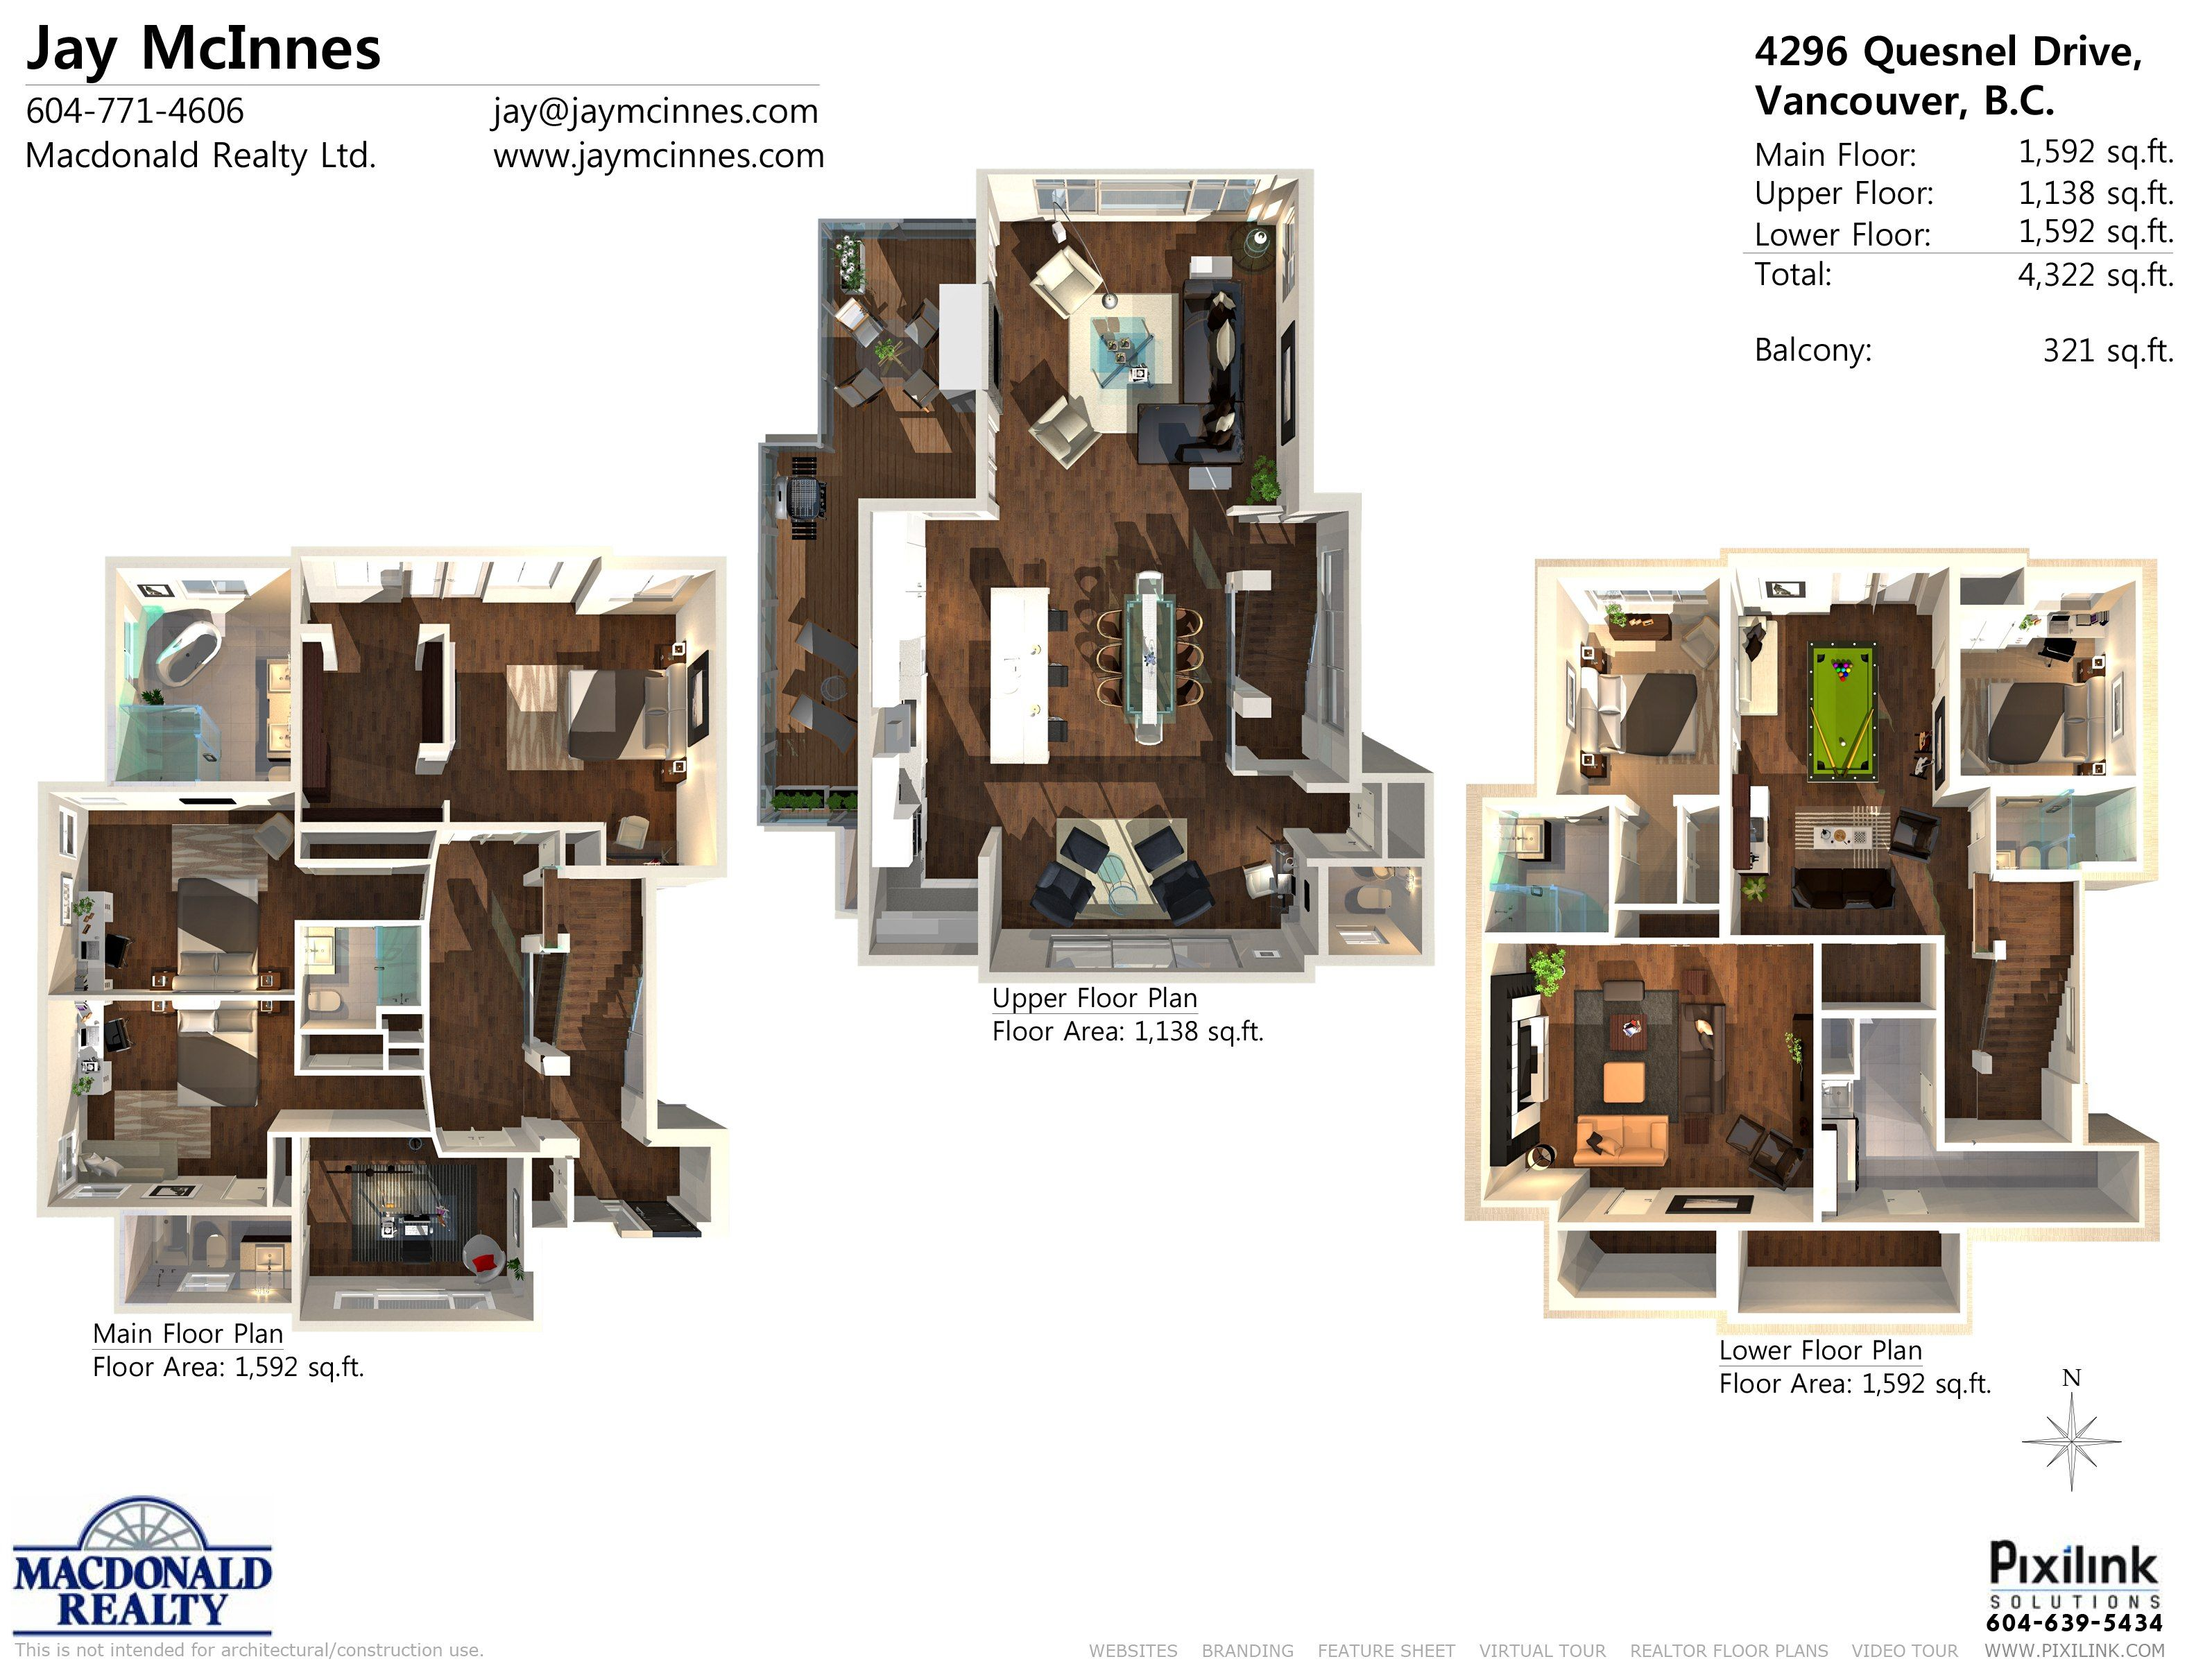 3d mansion floor plans - Google Search | My house | Pinterest ... on 3d mansion drawings, 3d hd mansion house, 3d mansion print, mansion interior design, beautiful mansion design, 3d mansion house plans, 3d mansion walkway, house design, 3d mansion estate, modern building design, luxury villa design,